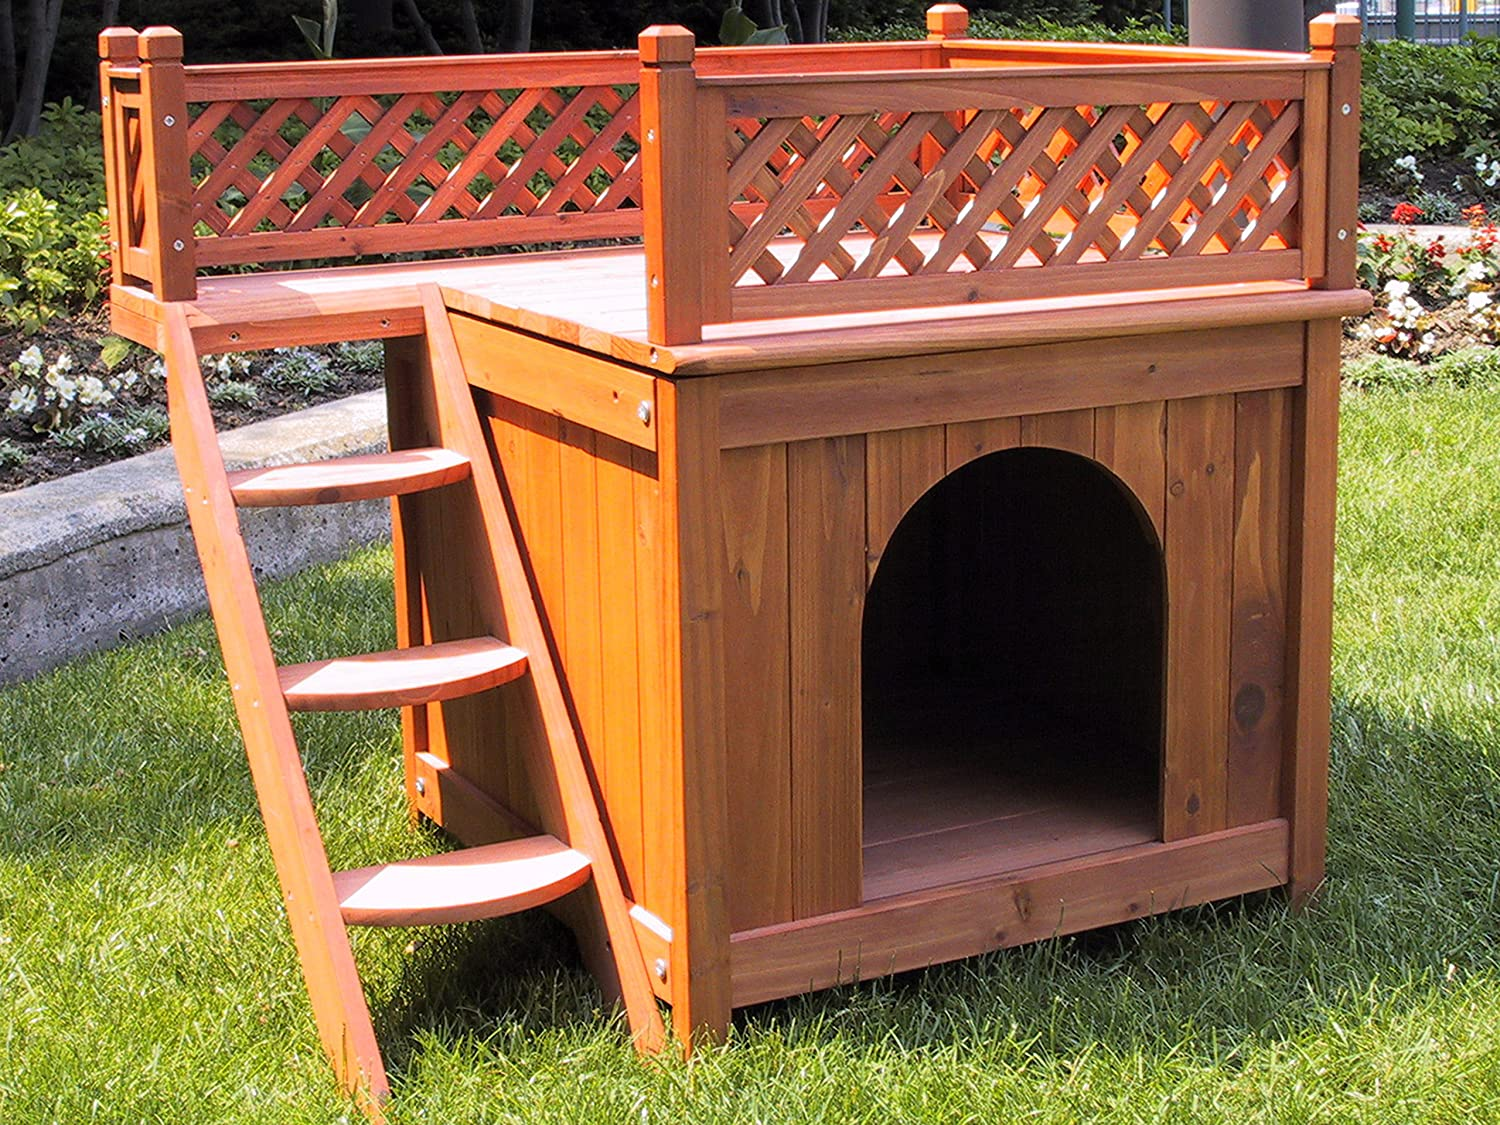 Indoor dog houses - Amazon Com Merry Pet Mps002 Wood Room With A View Pet House Dog Houses Pet Supplies